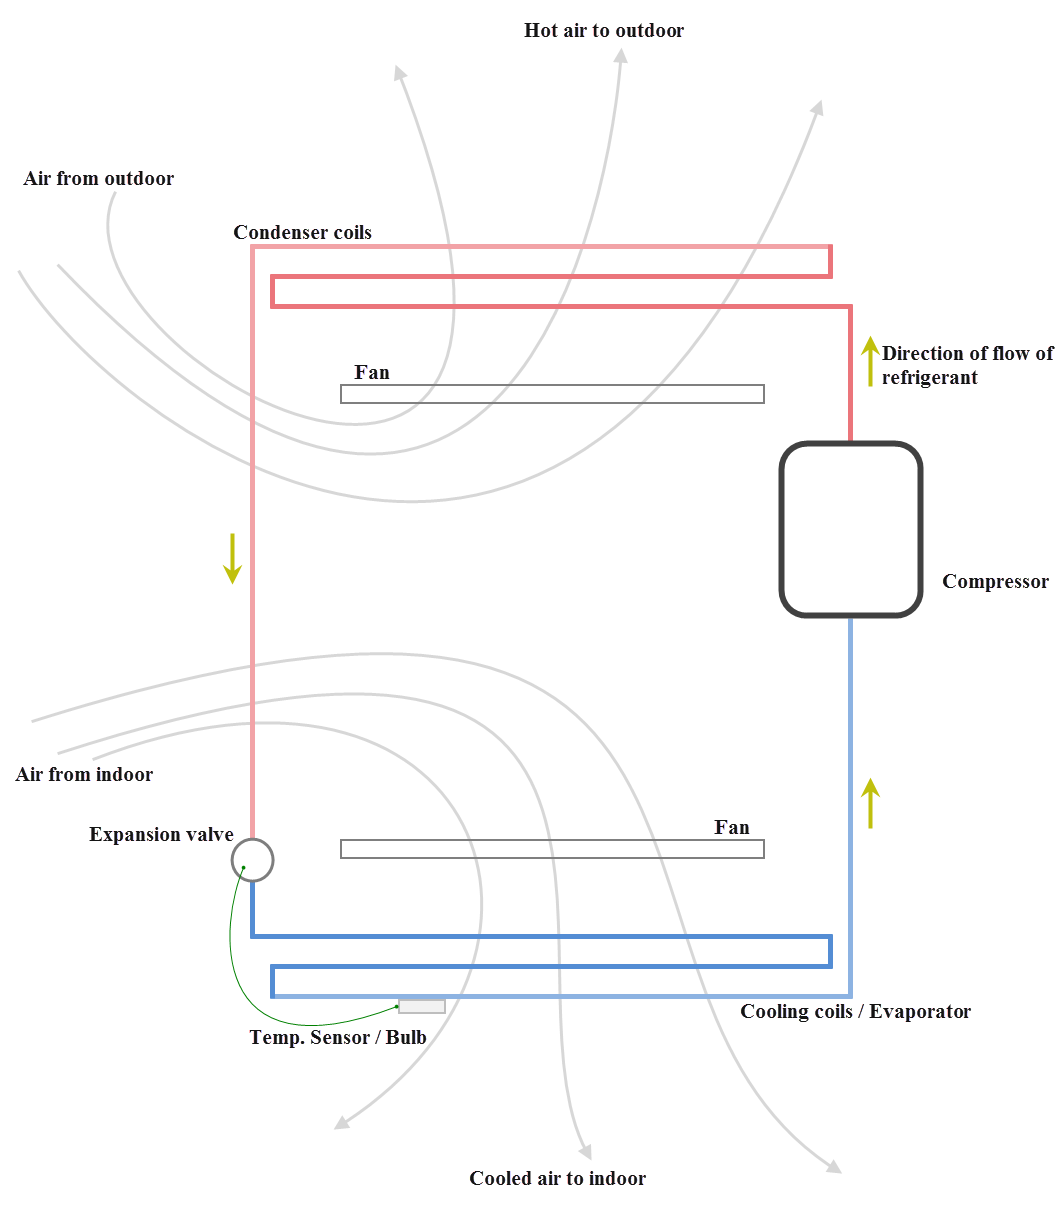 Mechanism And Principle Of Air Conditioning - Easy Diagrammatic Explanation  - Benign Blog